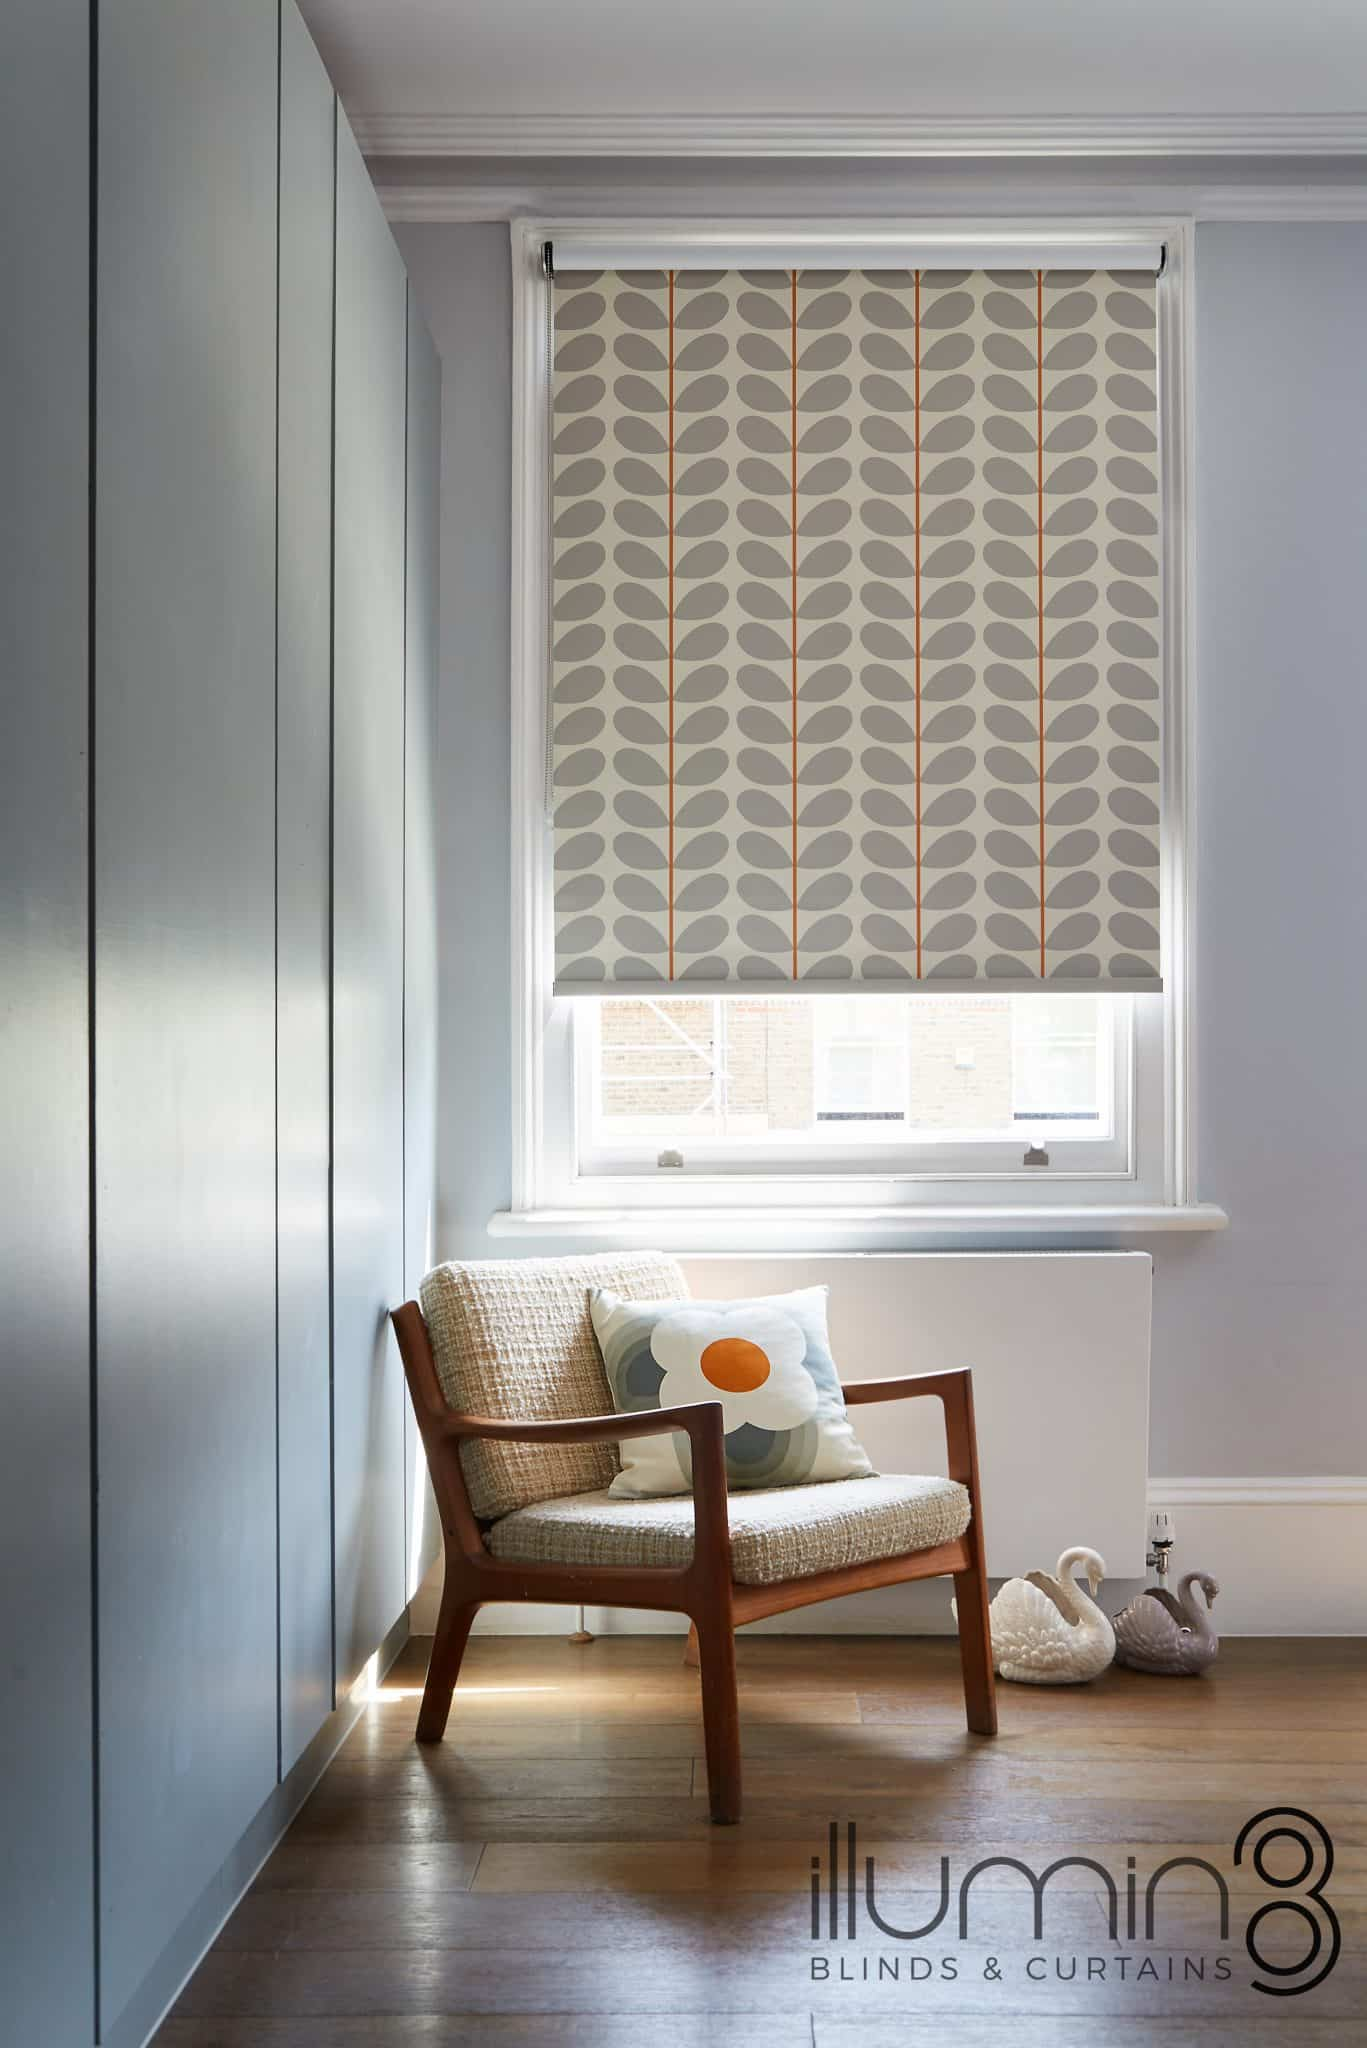 Orla Kiely Blinds, living room blinds at Village Blinds Ballymena